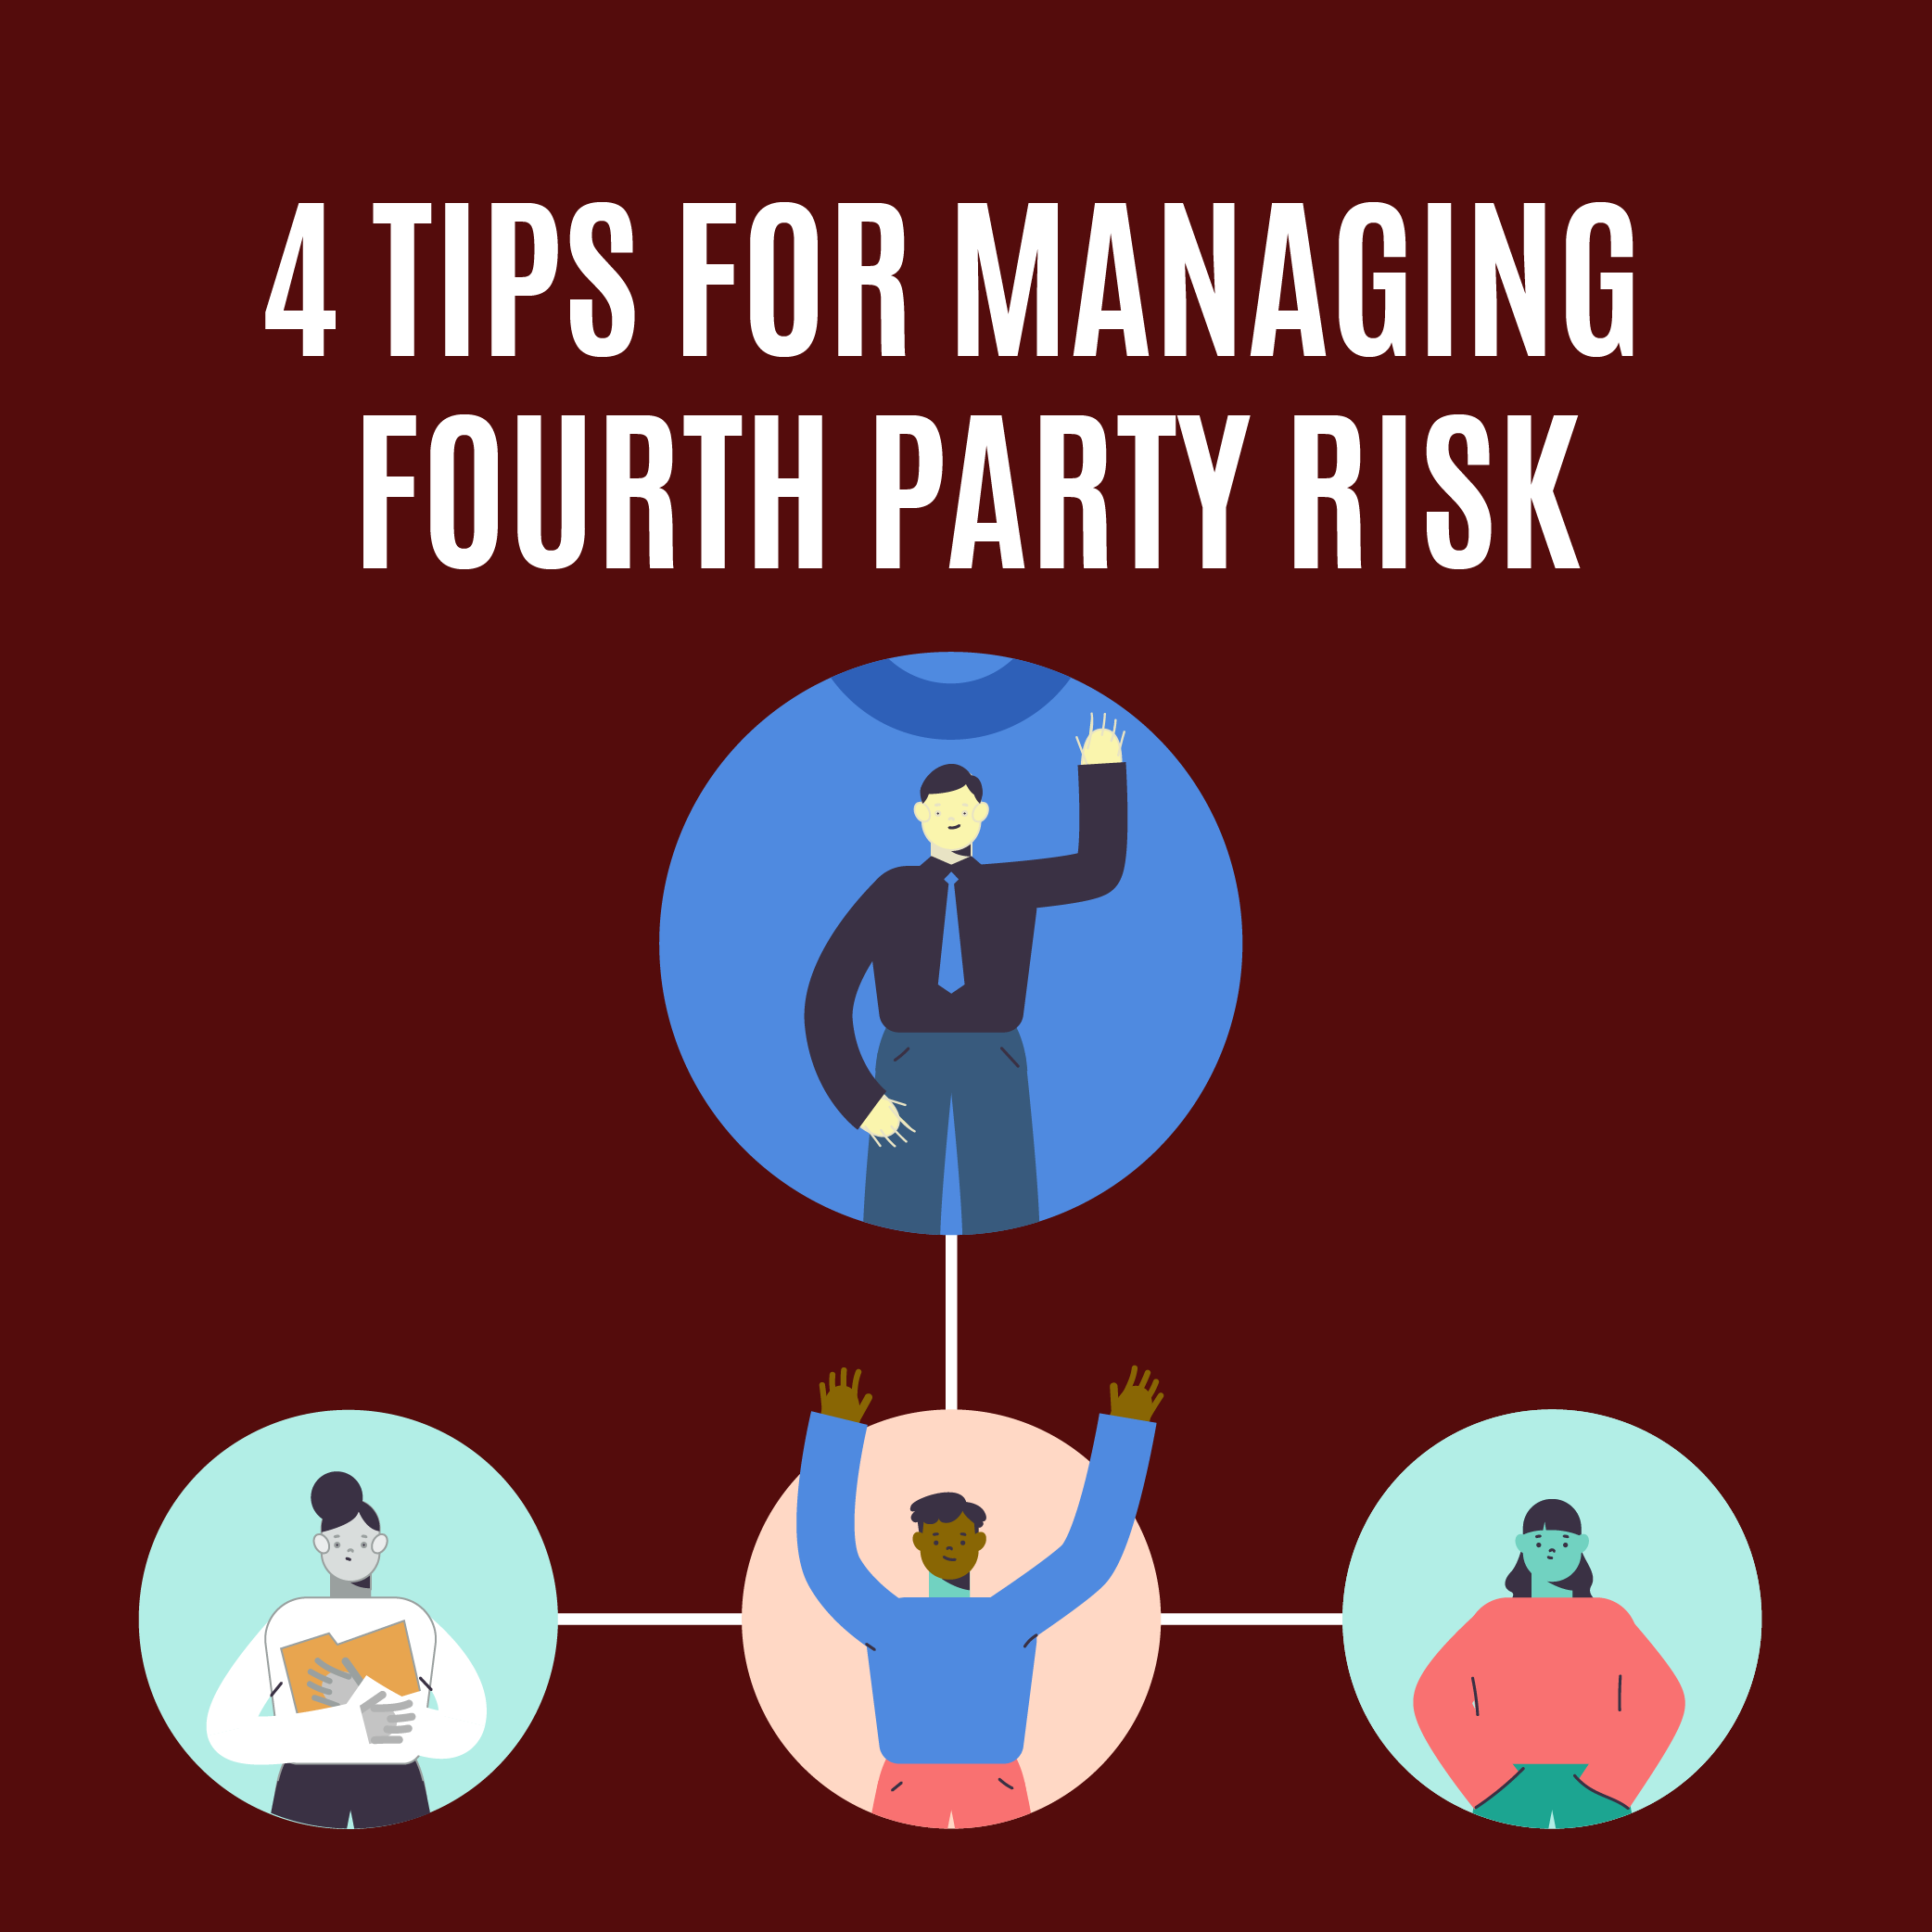 fourth party risk